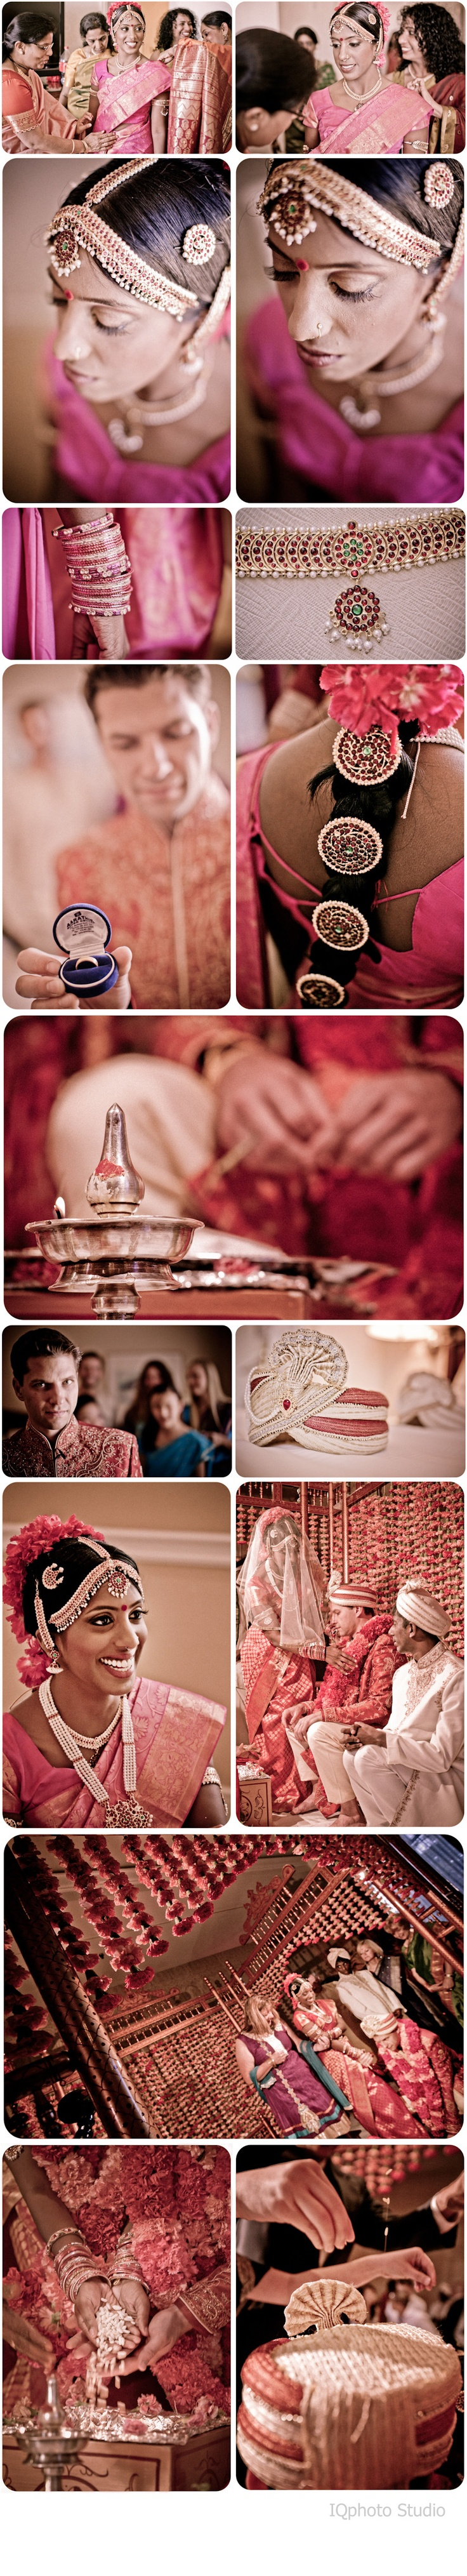 41 best Indian Weddings images on Pinterest   Indian bridal, Indian ...